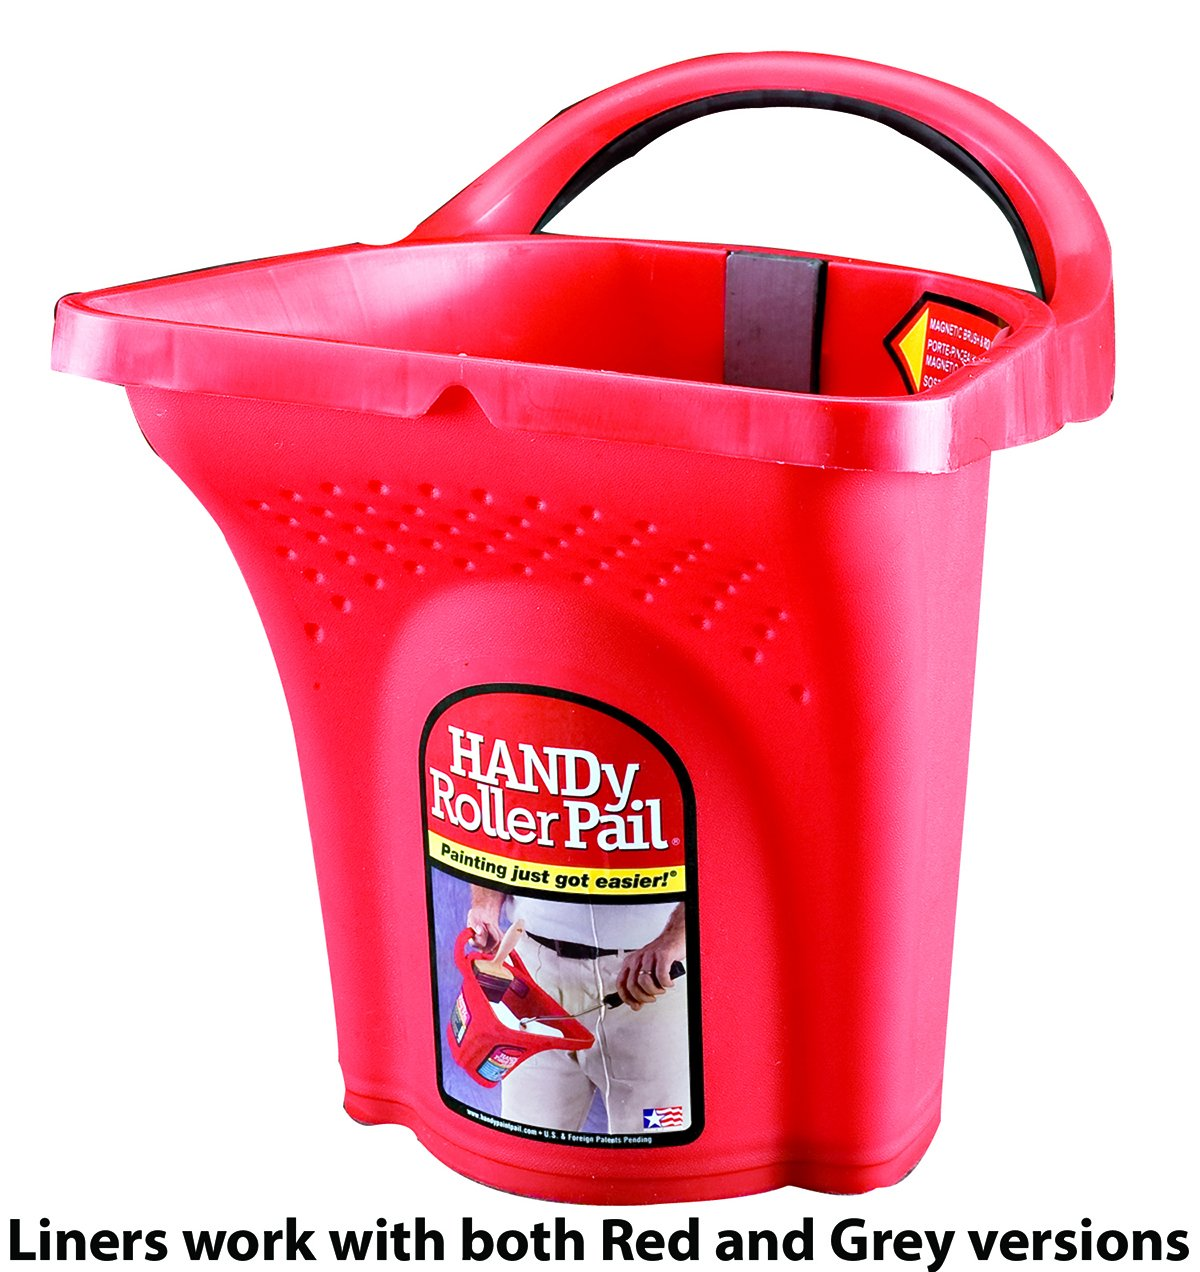 HANDy Roller Pail Liners - 10 Pack by Handy Roller Pail